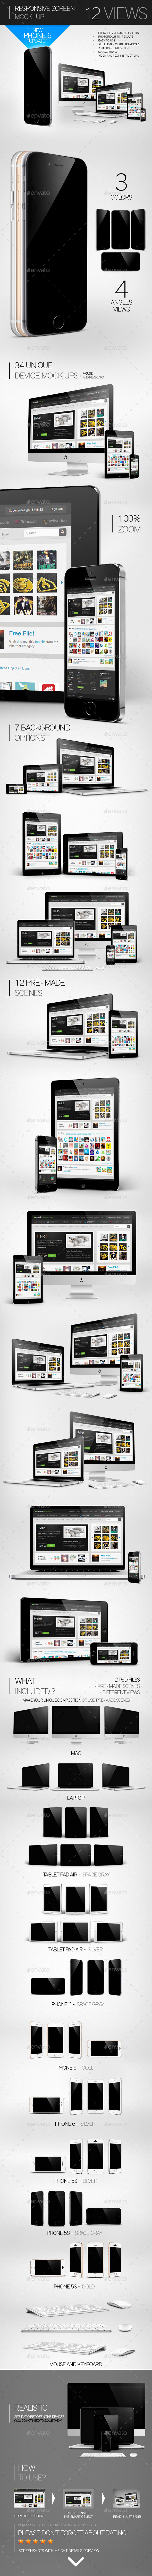 Responsive Screen Mock-Up - Multiple Displays